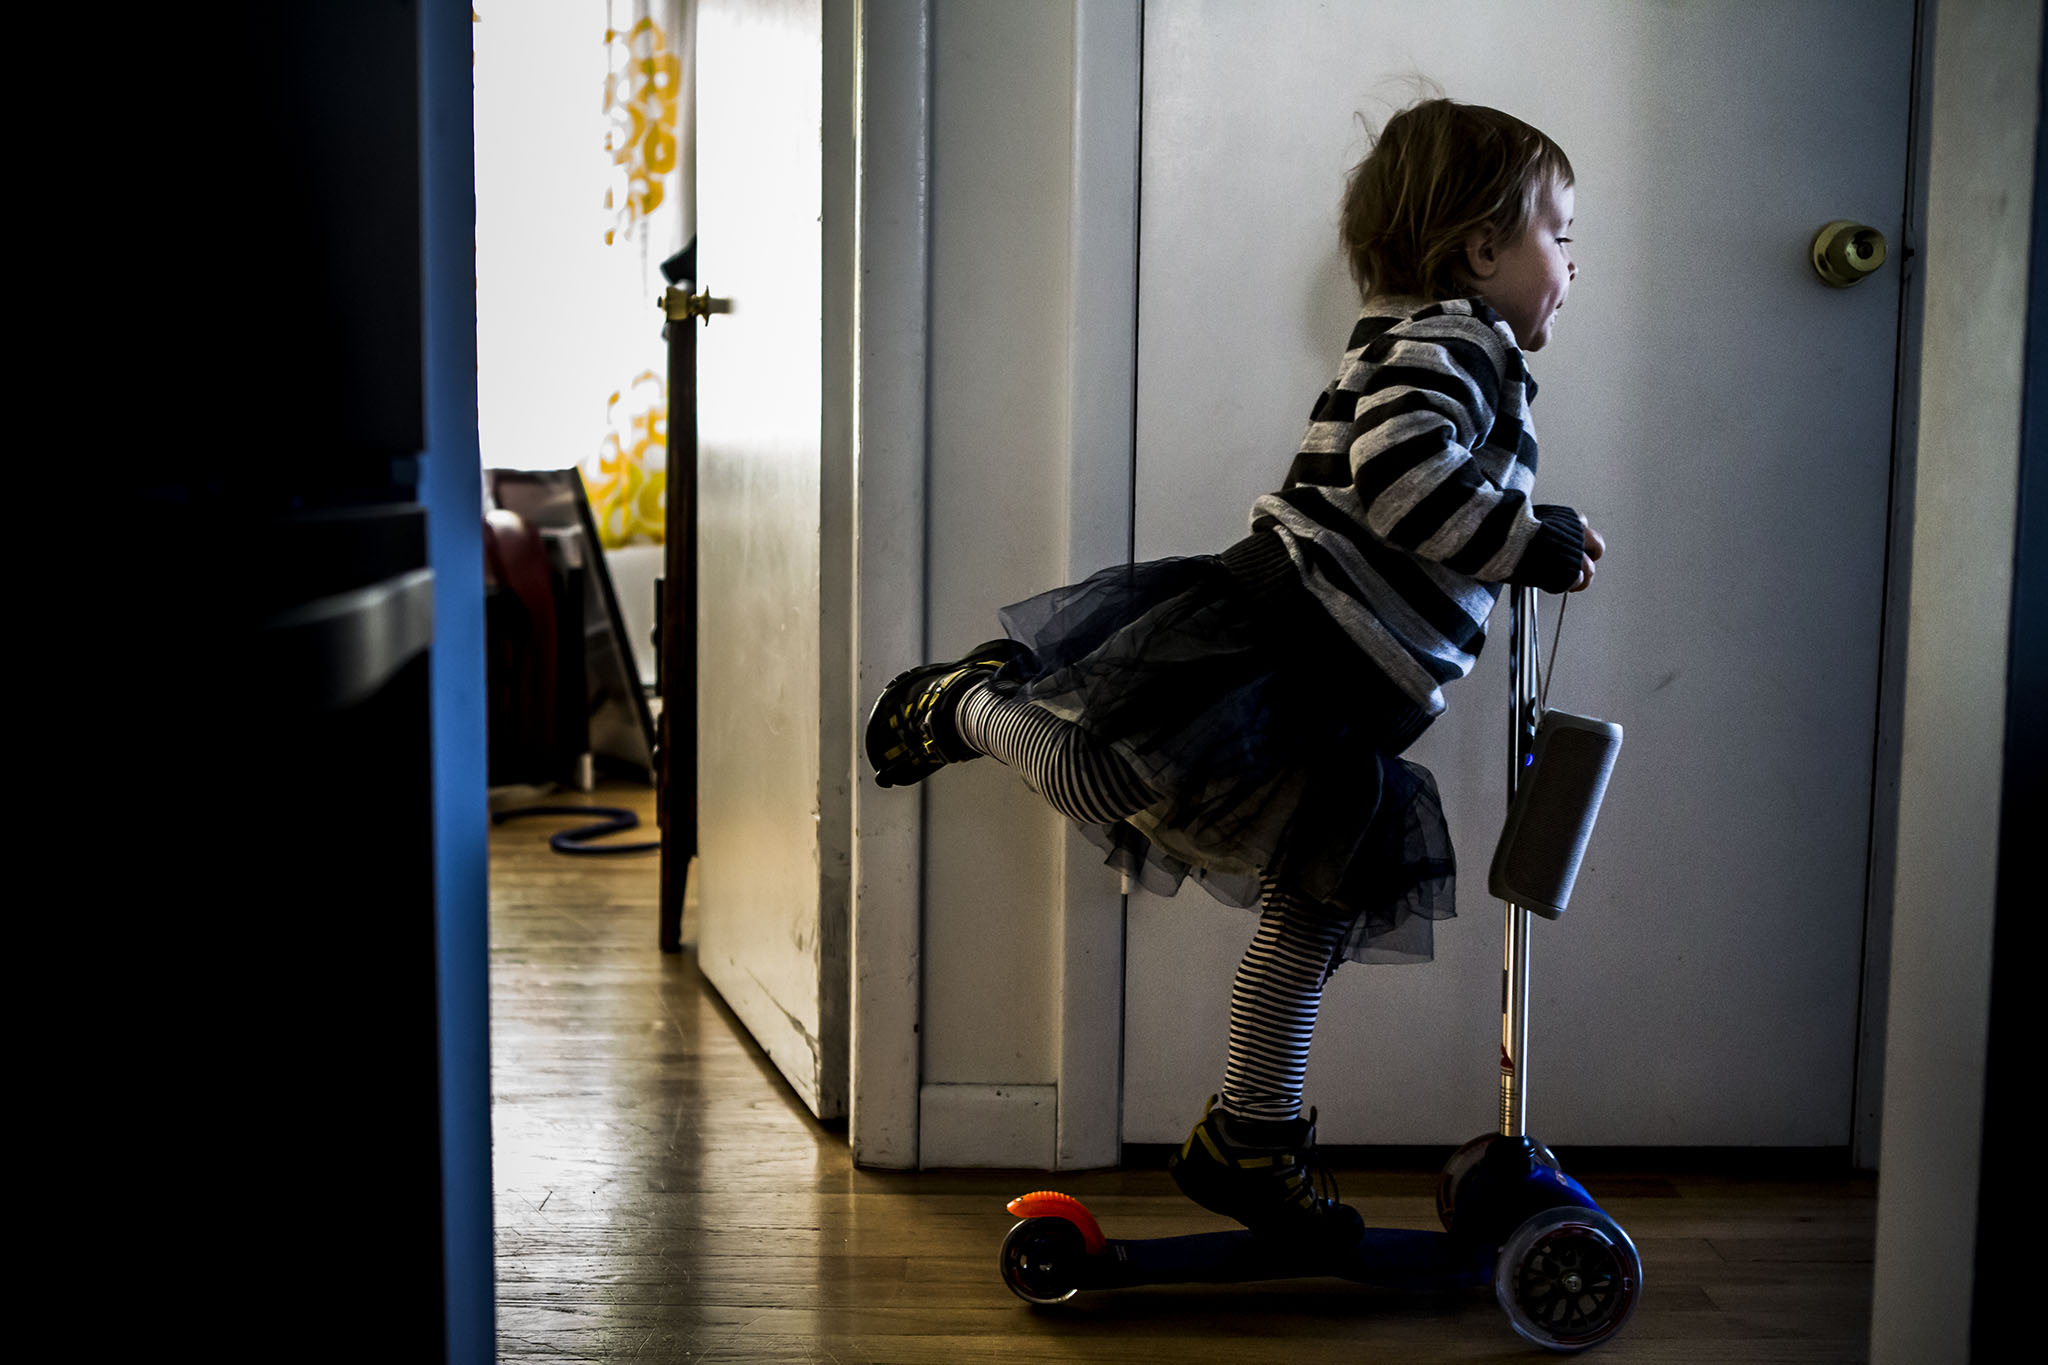 child scooting in house in candid child portrait by ct photographer chelsea silbereis.